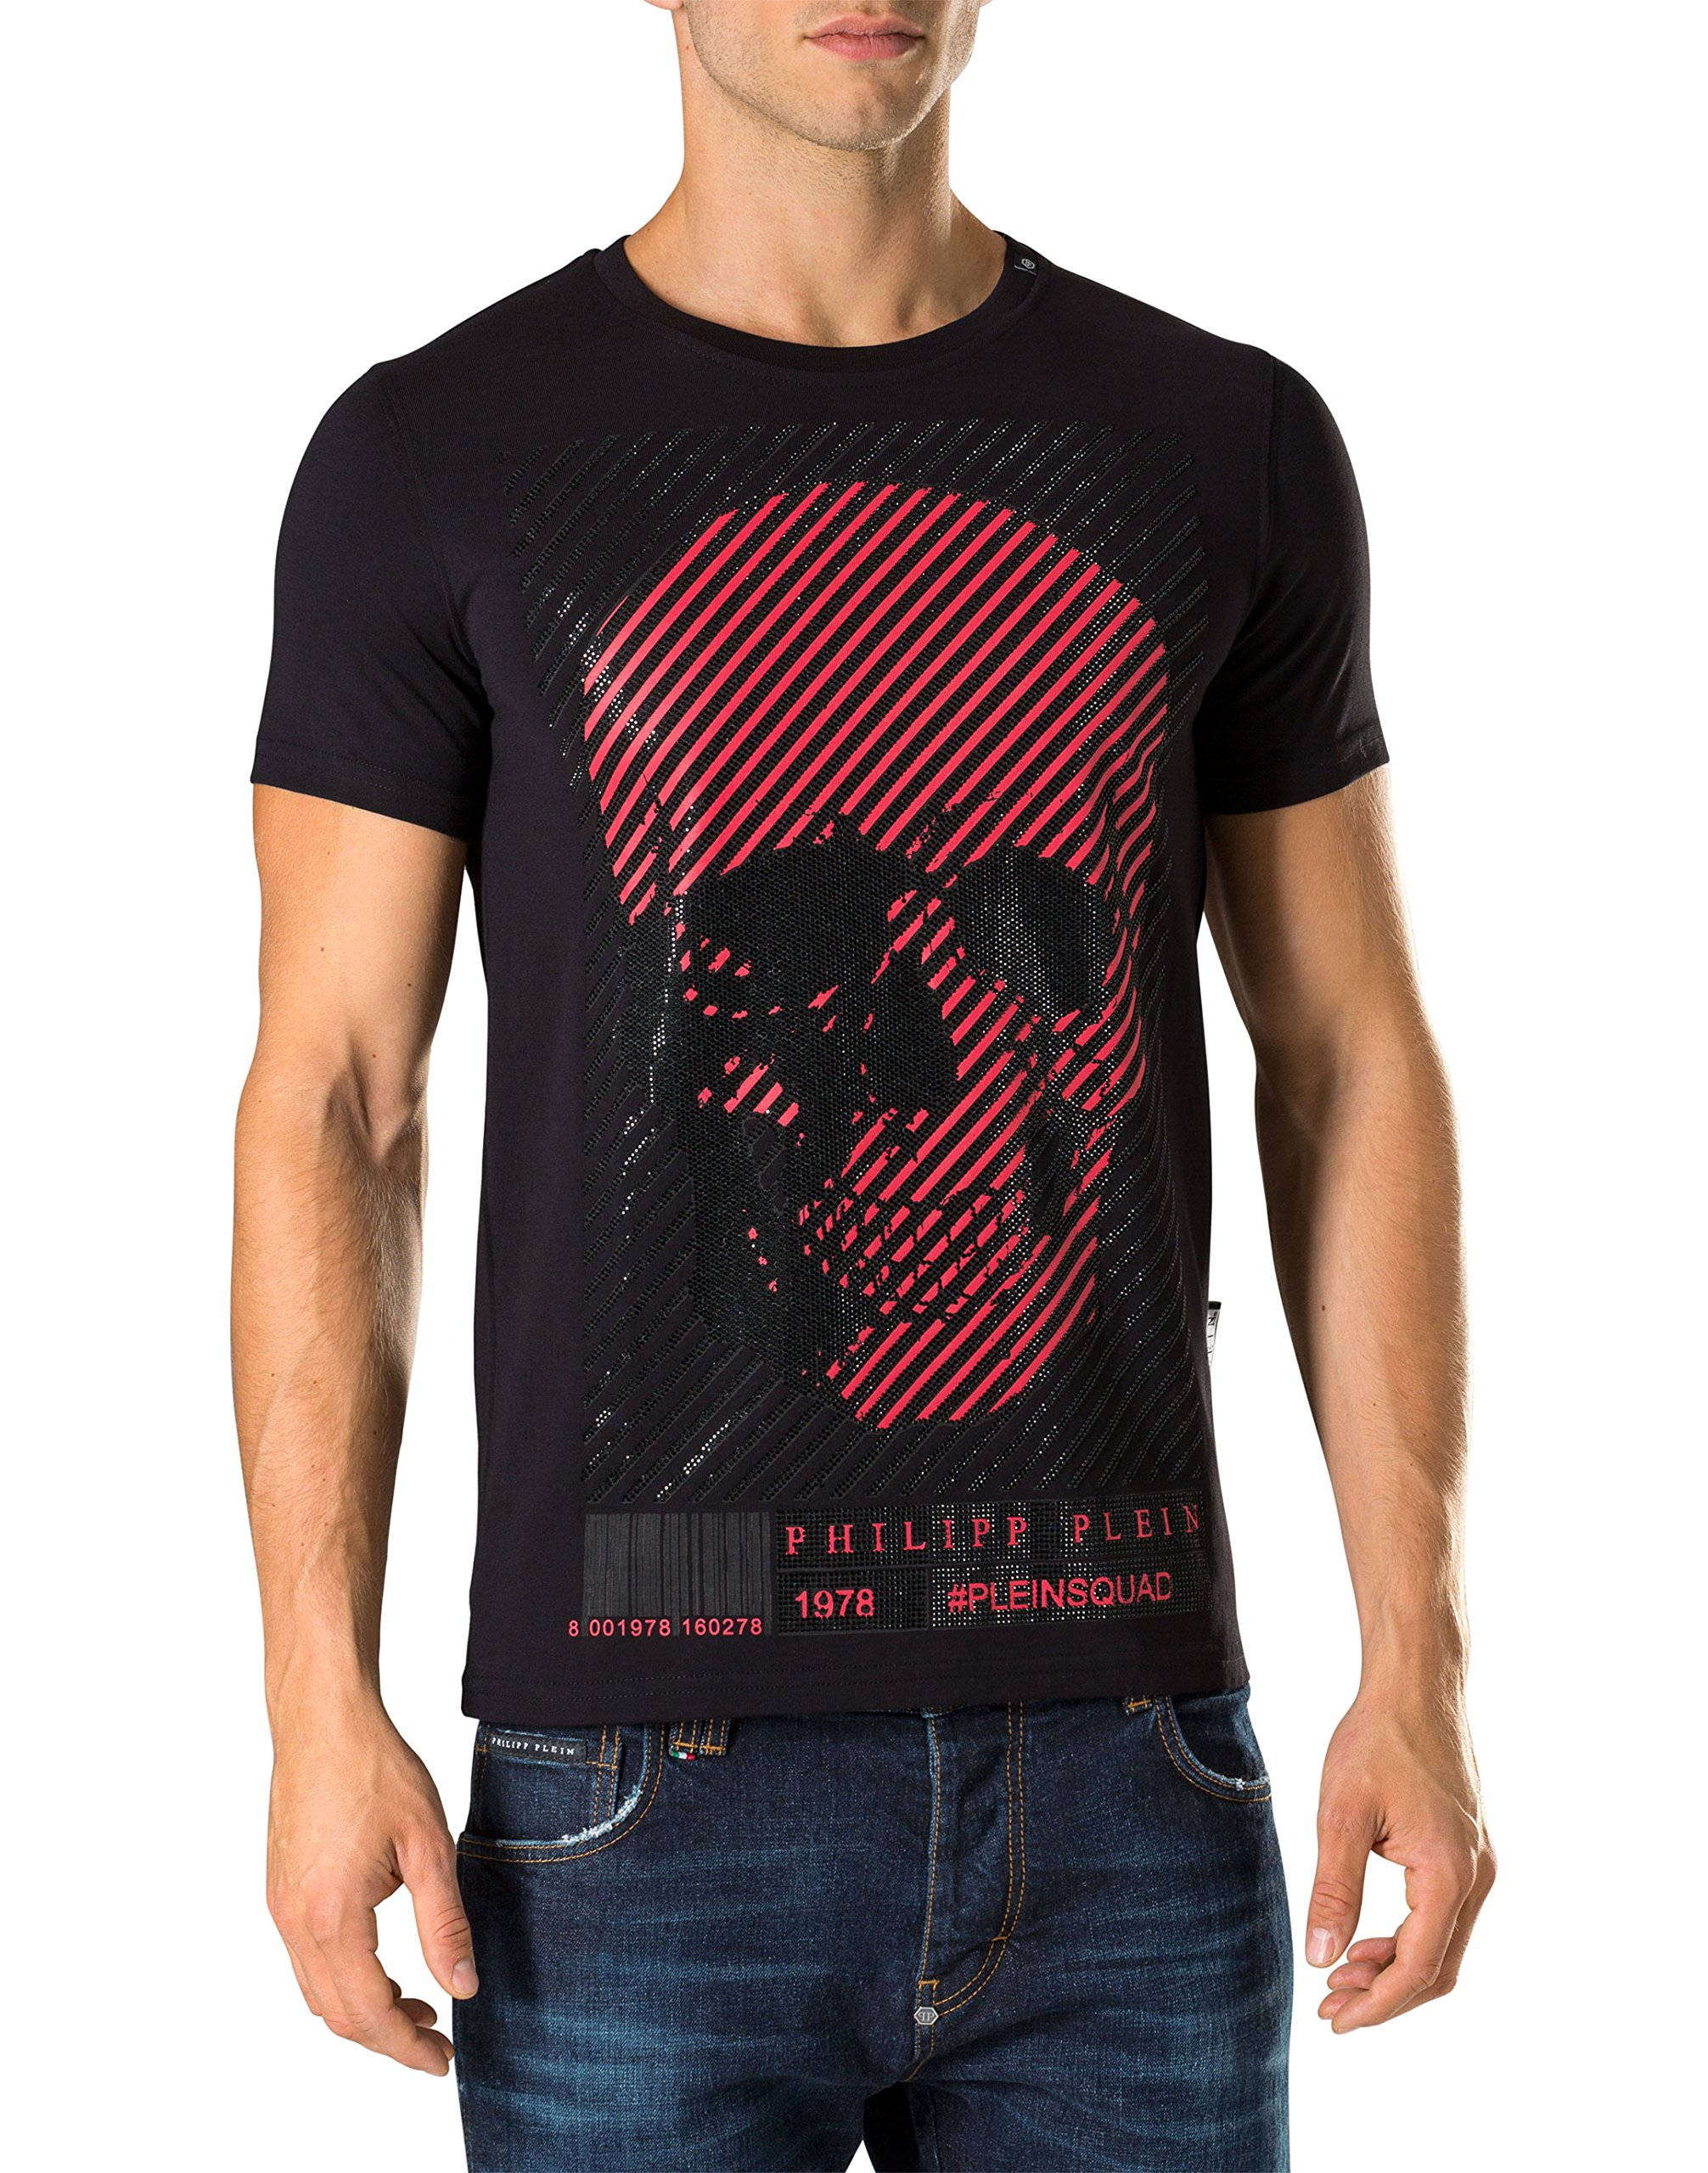 PHILIPP PLEIN Men's T-shirt Bad - black, M